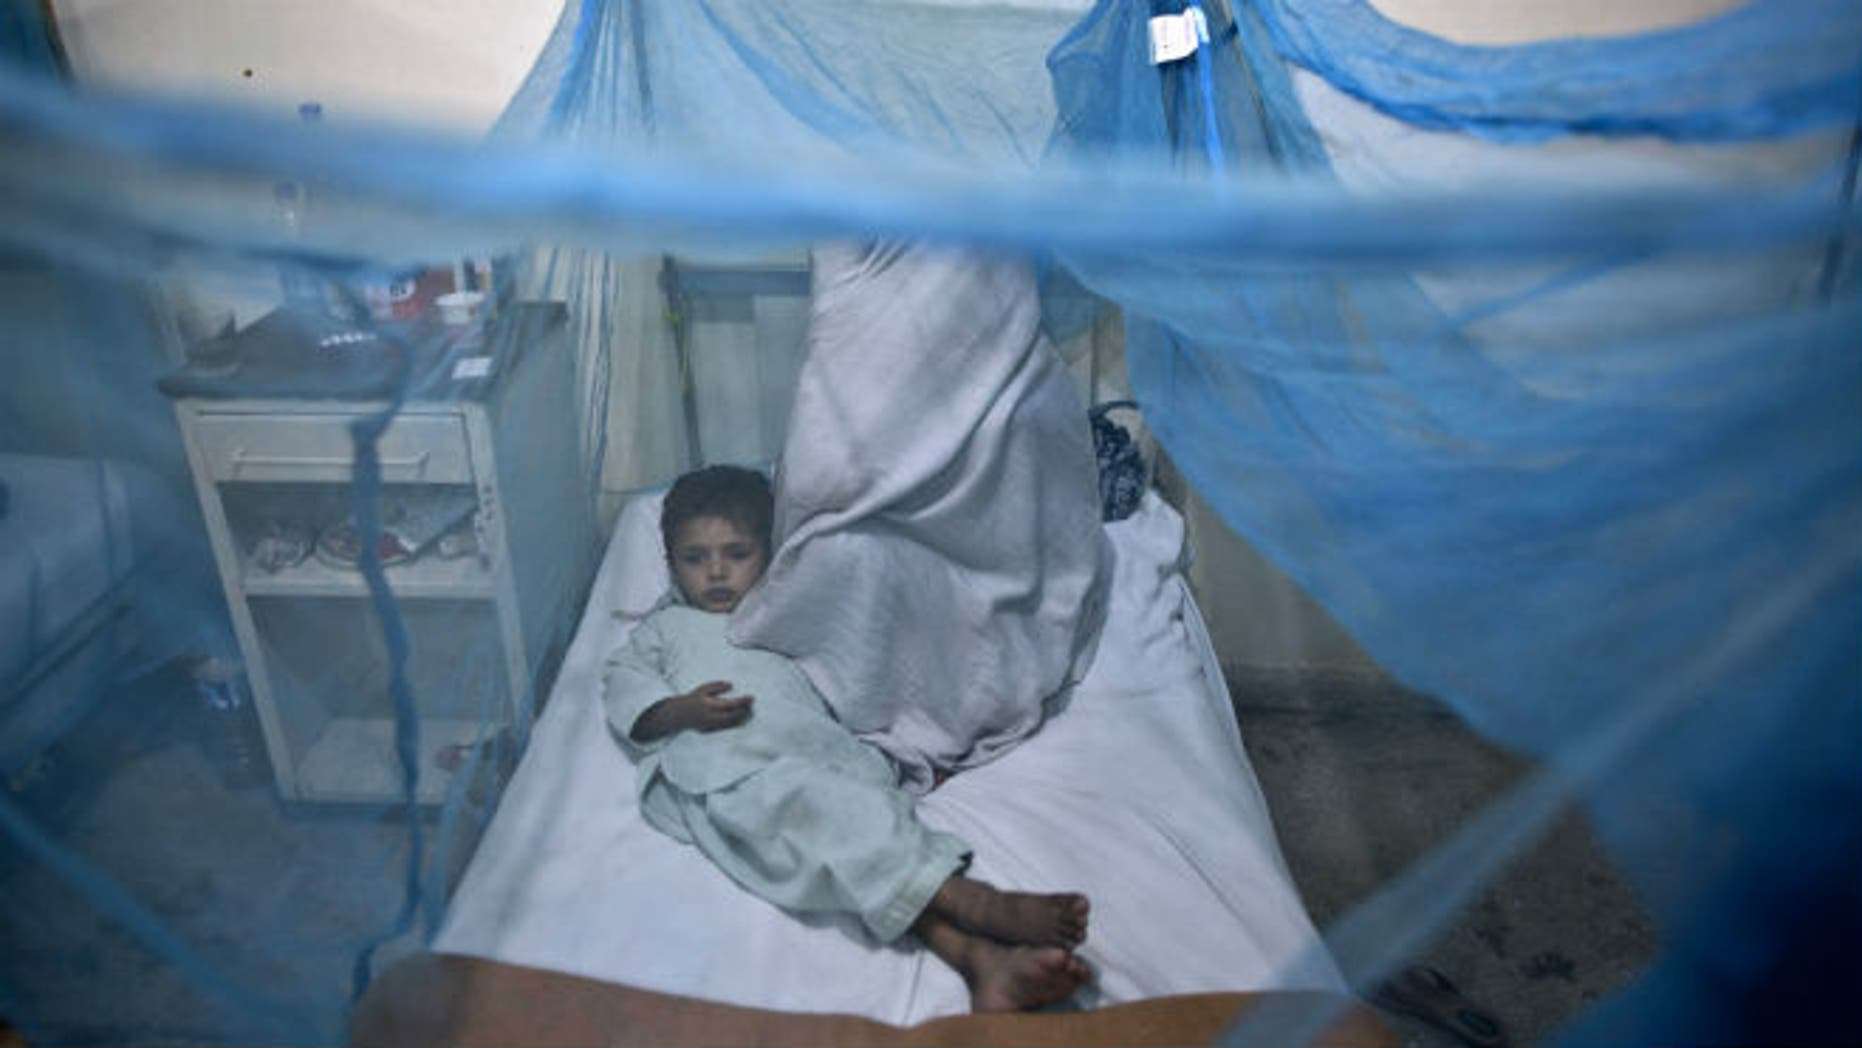 In this file photo taken Monday, Nov. 11, 2013, a Pakistani child suffering from the mosquito-borne disease, dengue fever, lies in a bed, next to his mother, covered with a net at an isolation ward of a hospital in Rawalpindi, Pakistan. (AP Photo/Muhammed Muheisen, File)